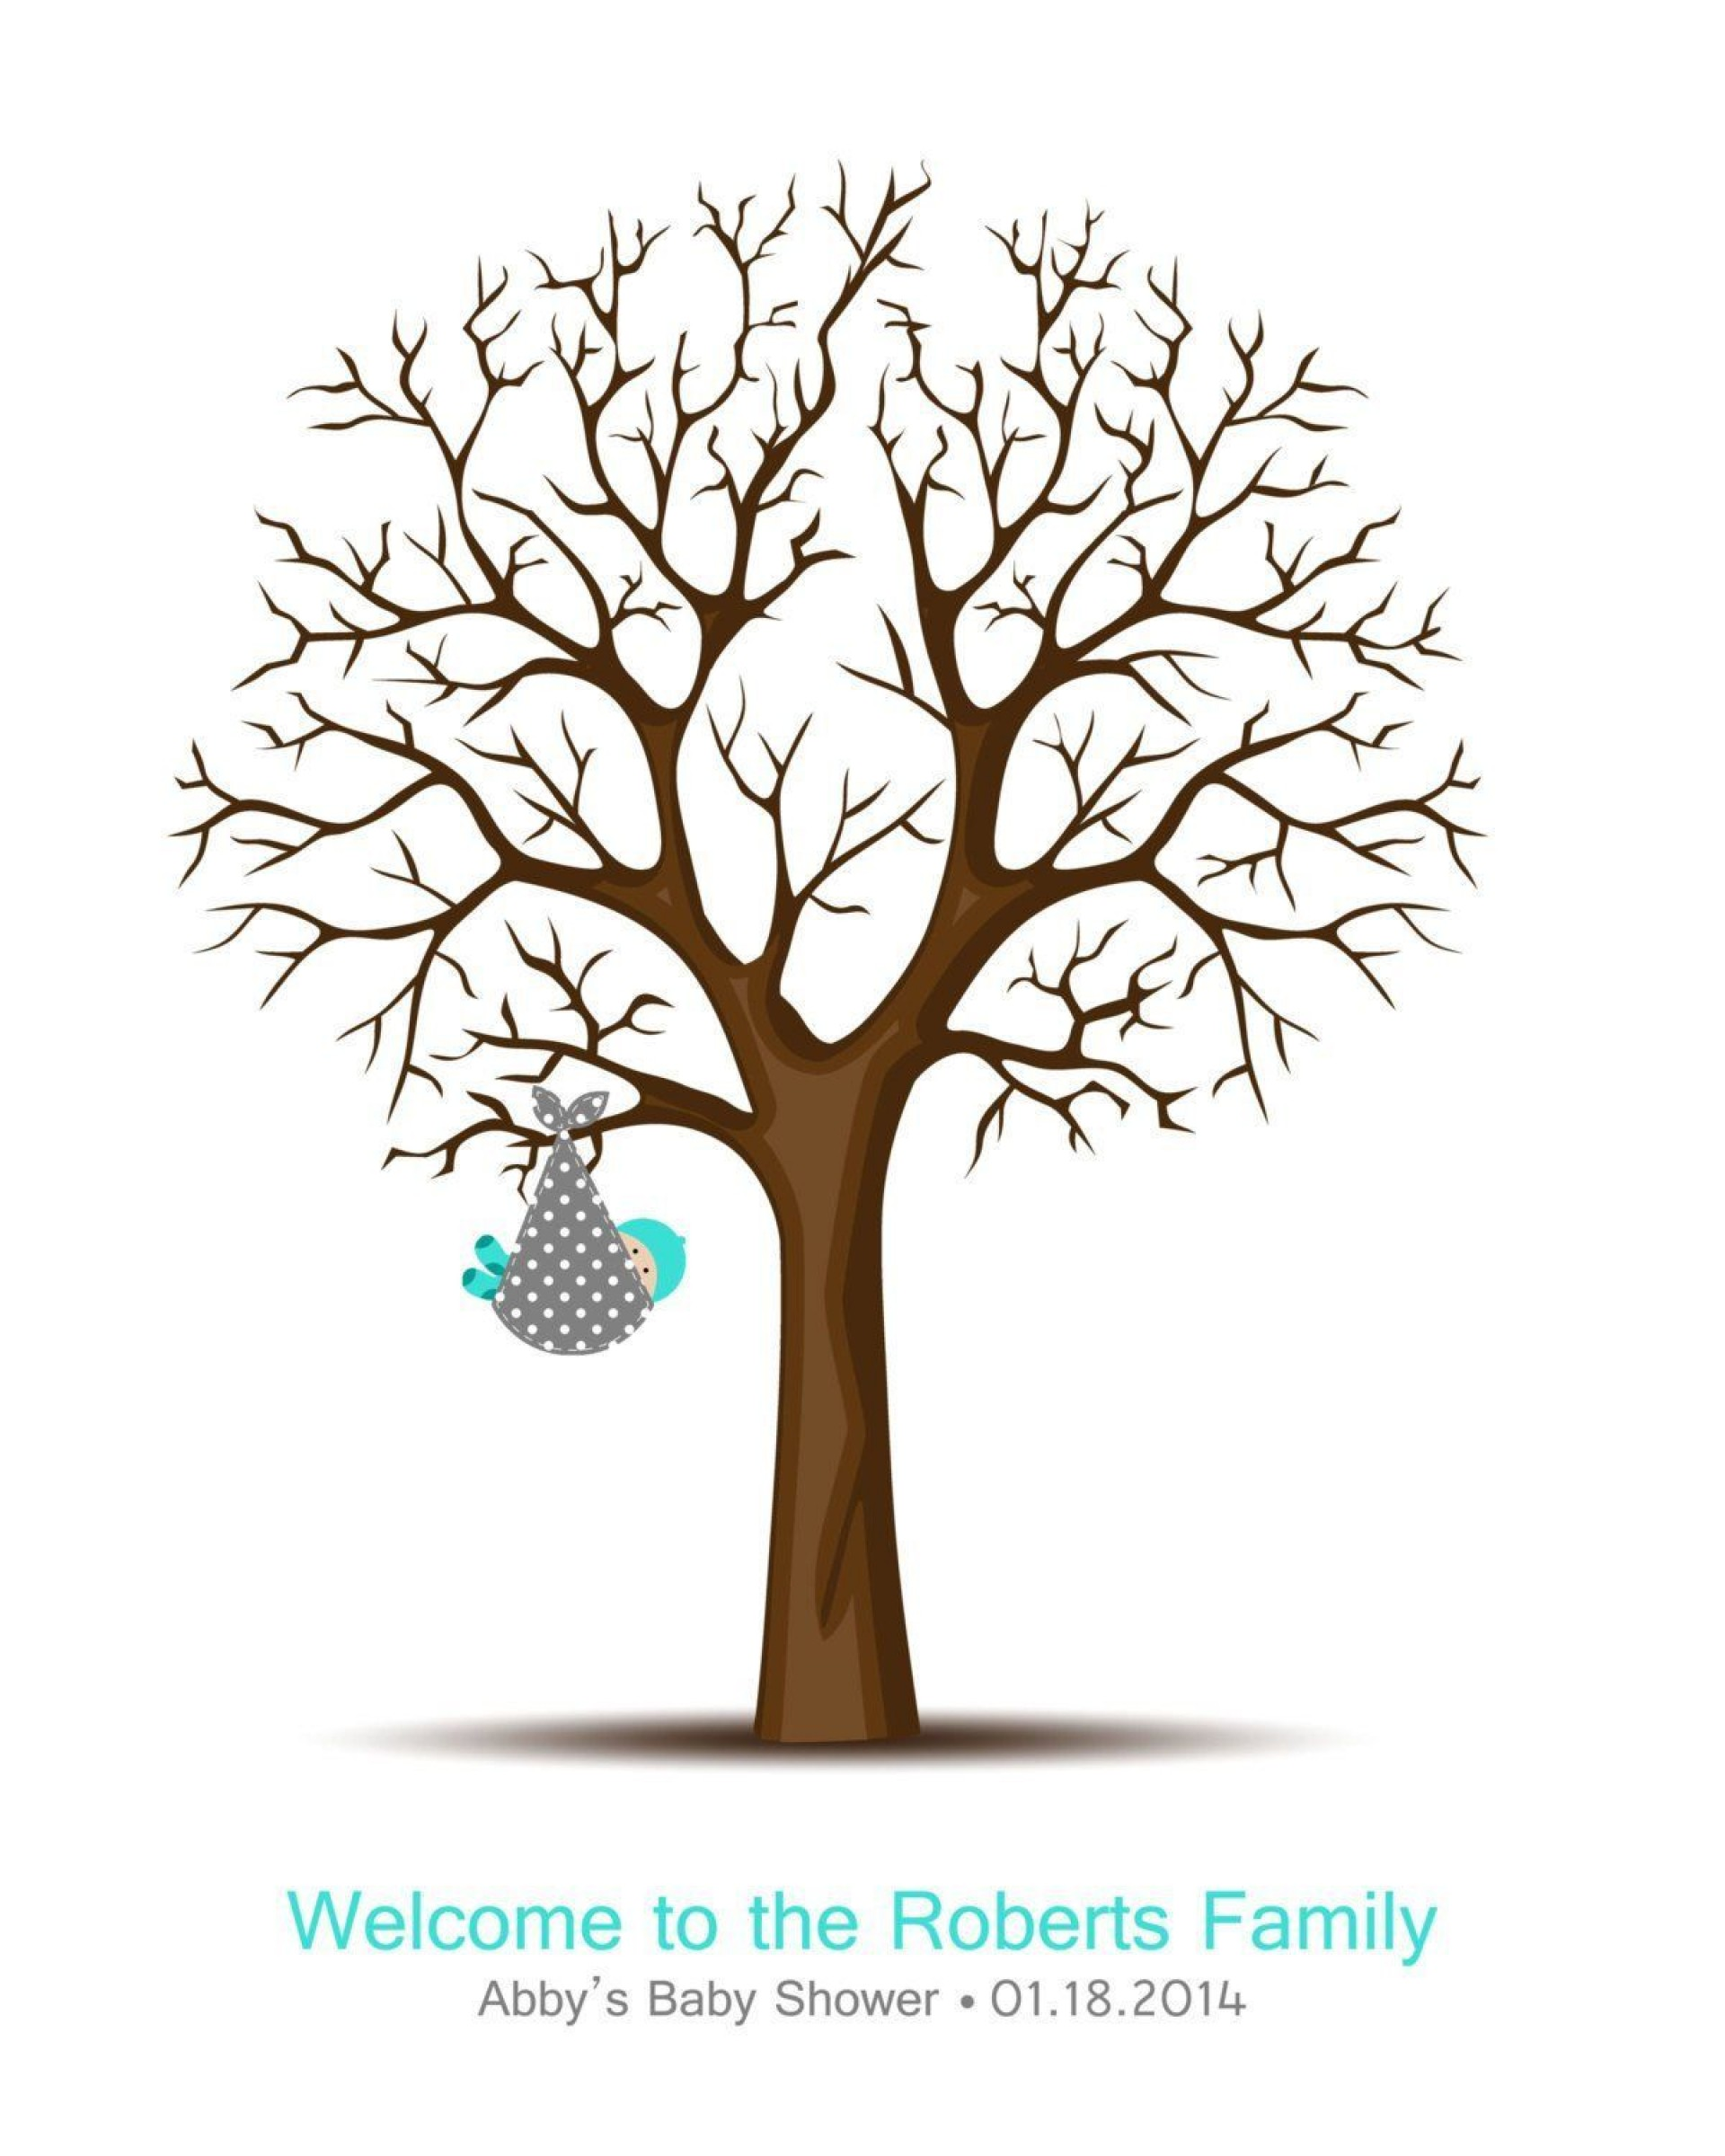 008 Fantastic Family Tree For Baby Book Template High Definition  Printable1920